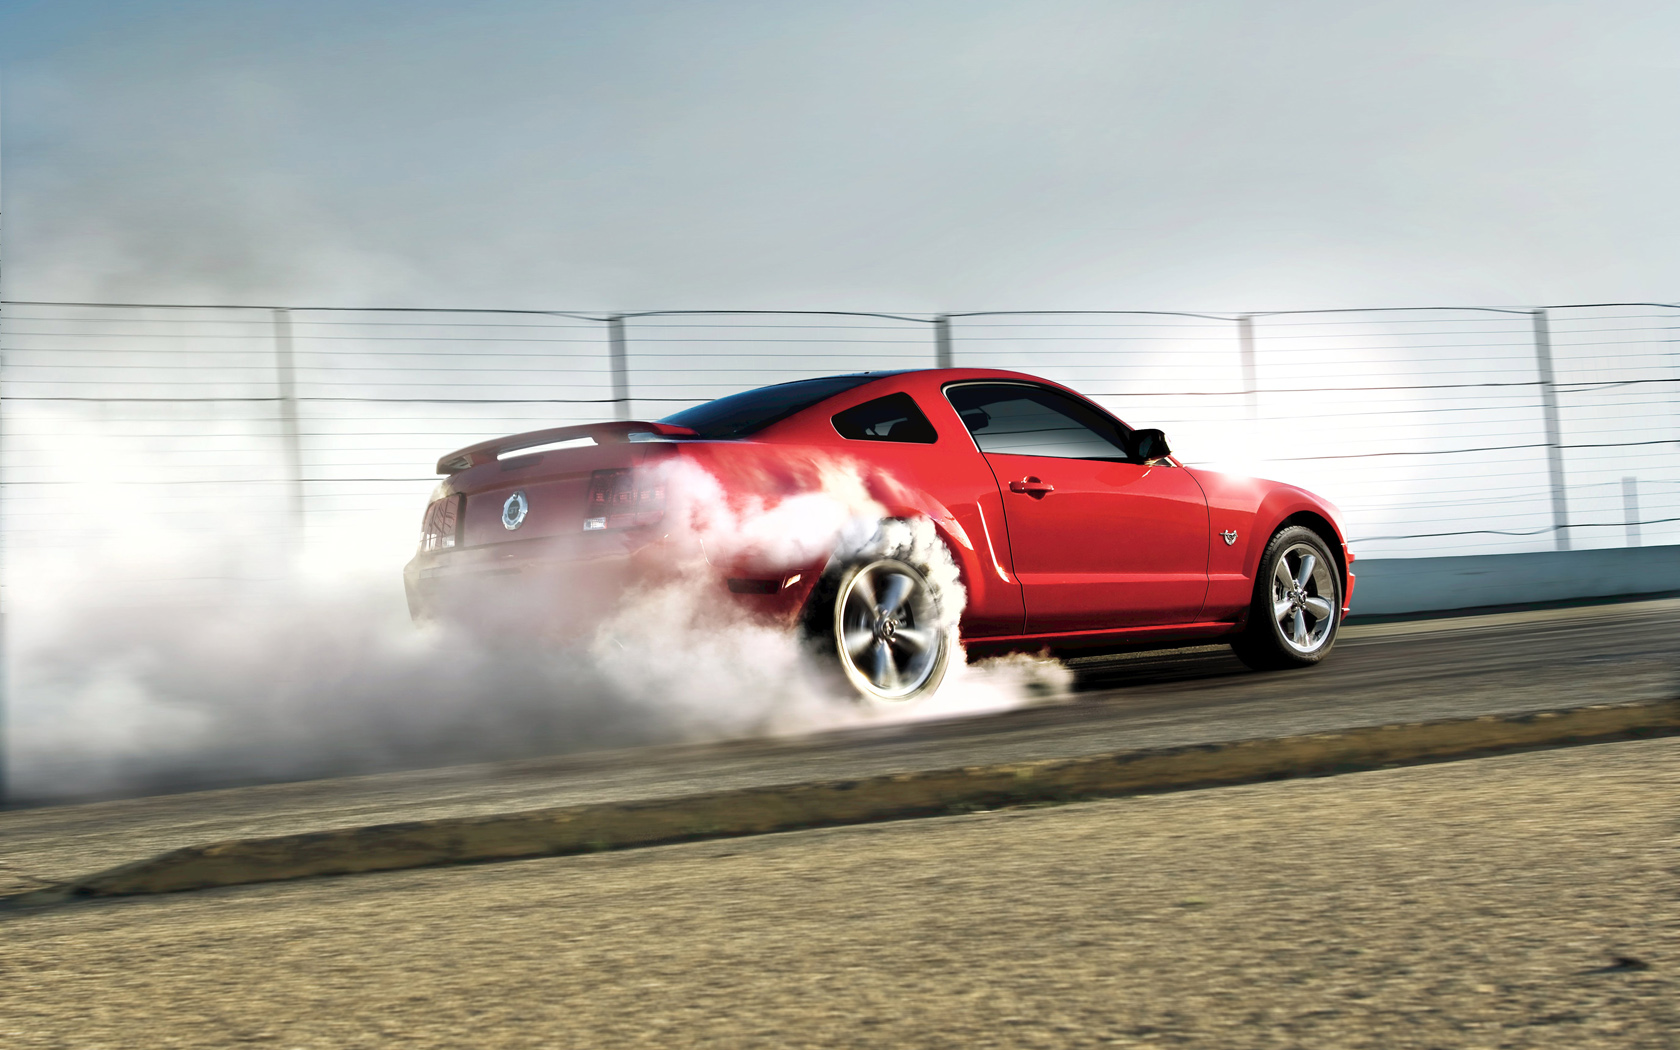 Ford Mustang Photo Gallery - 2009 mustang gt burnout (widescreen ...